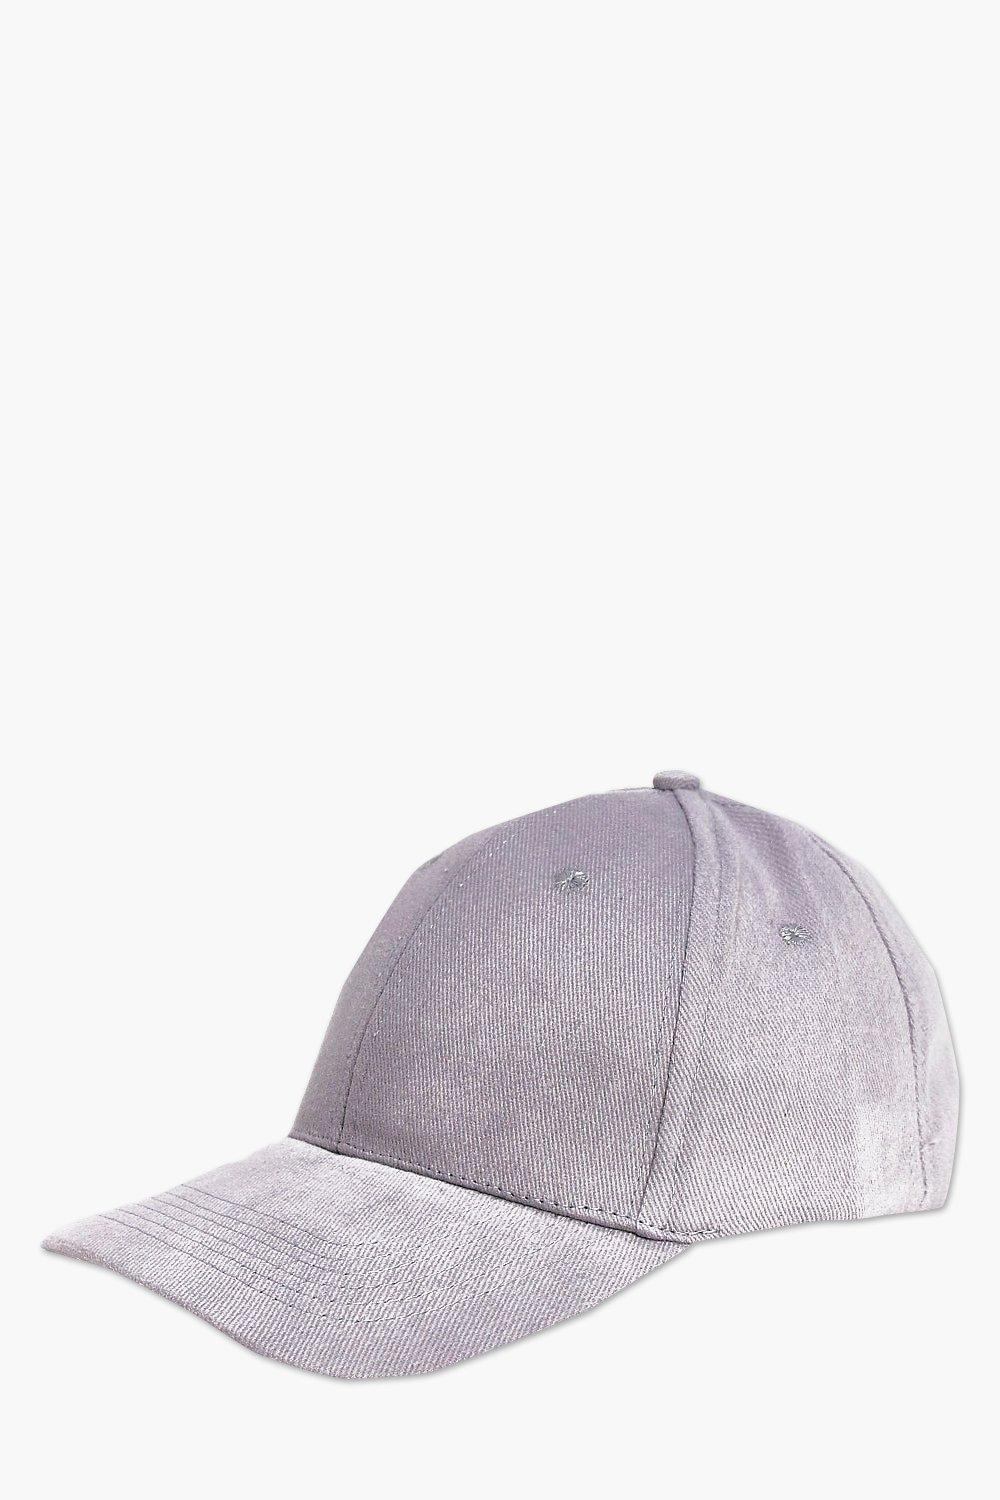 Cap - grey - Basic Cap - grey